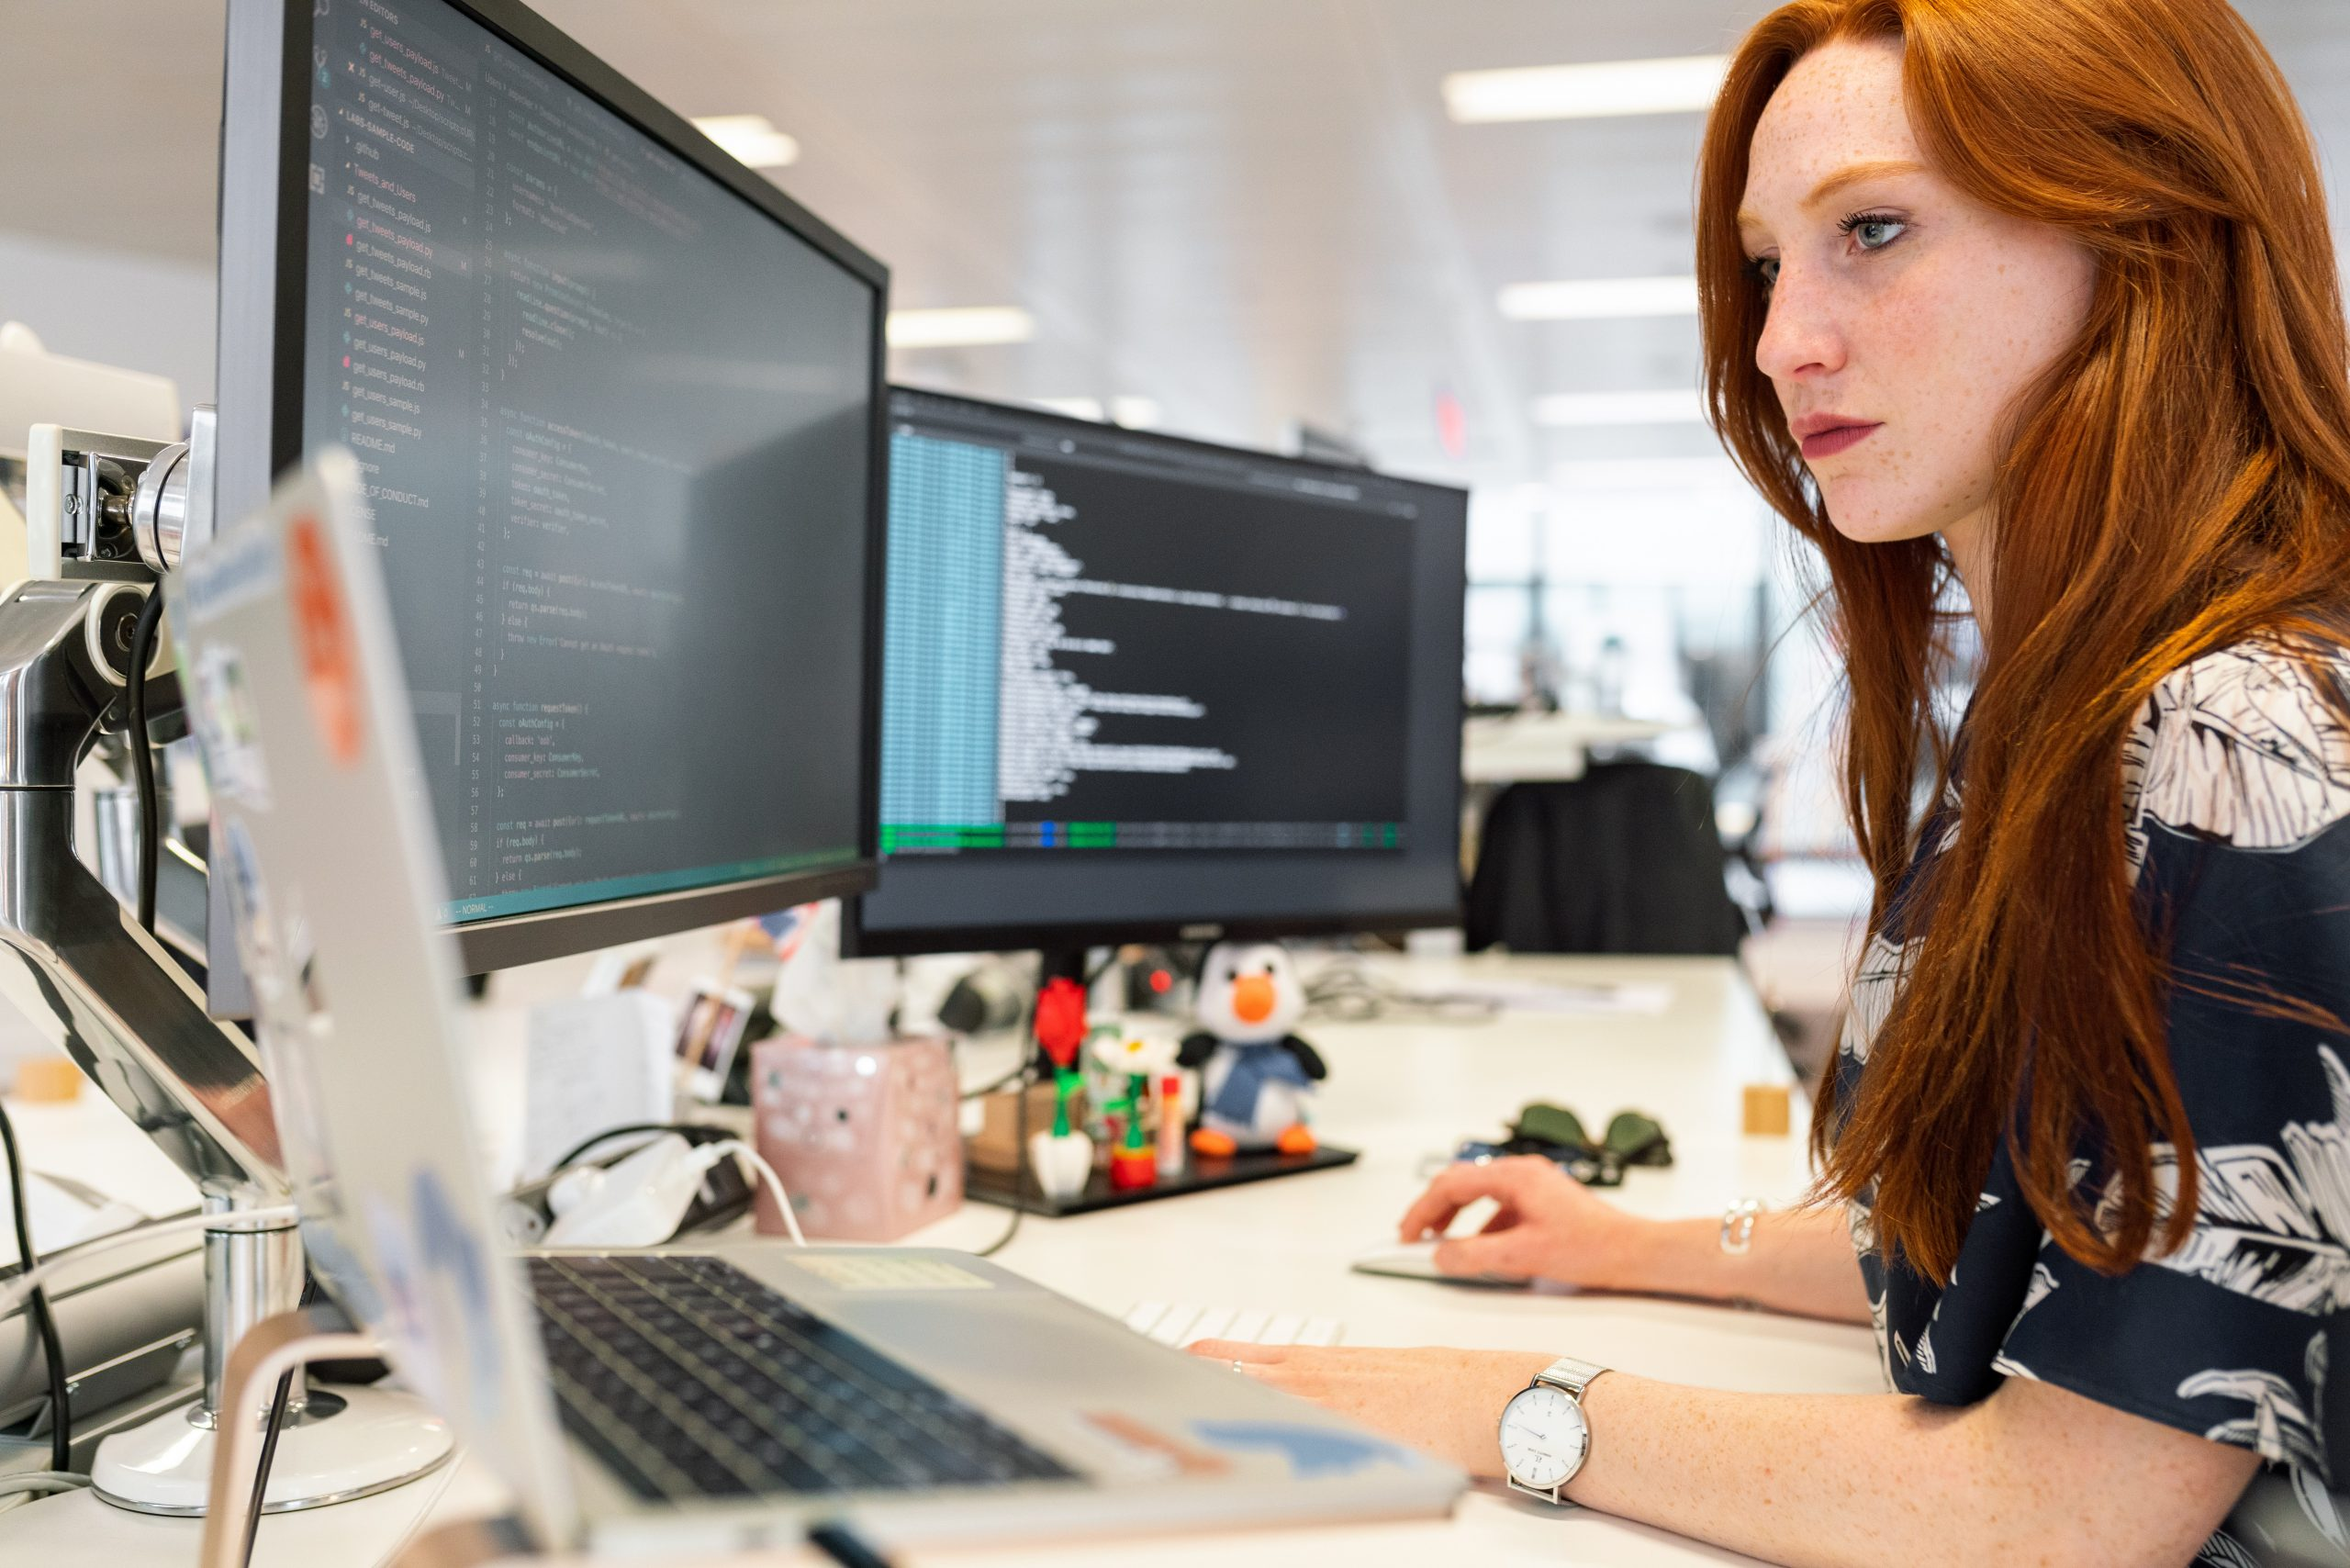 Develop custom software for business